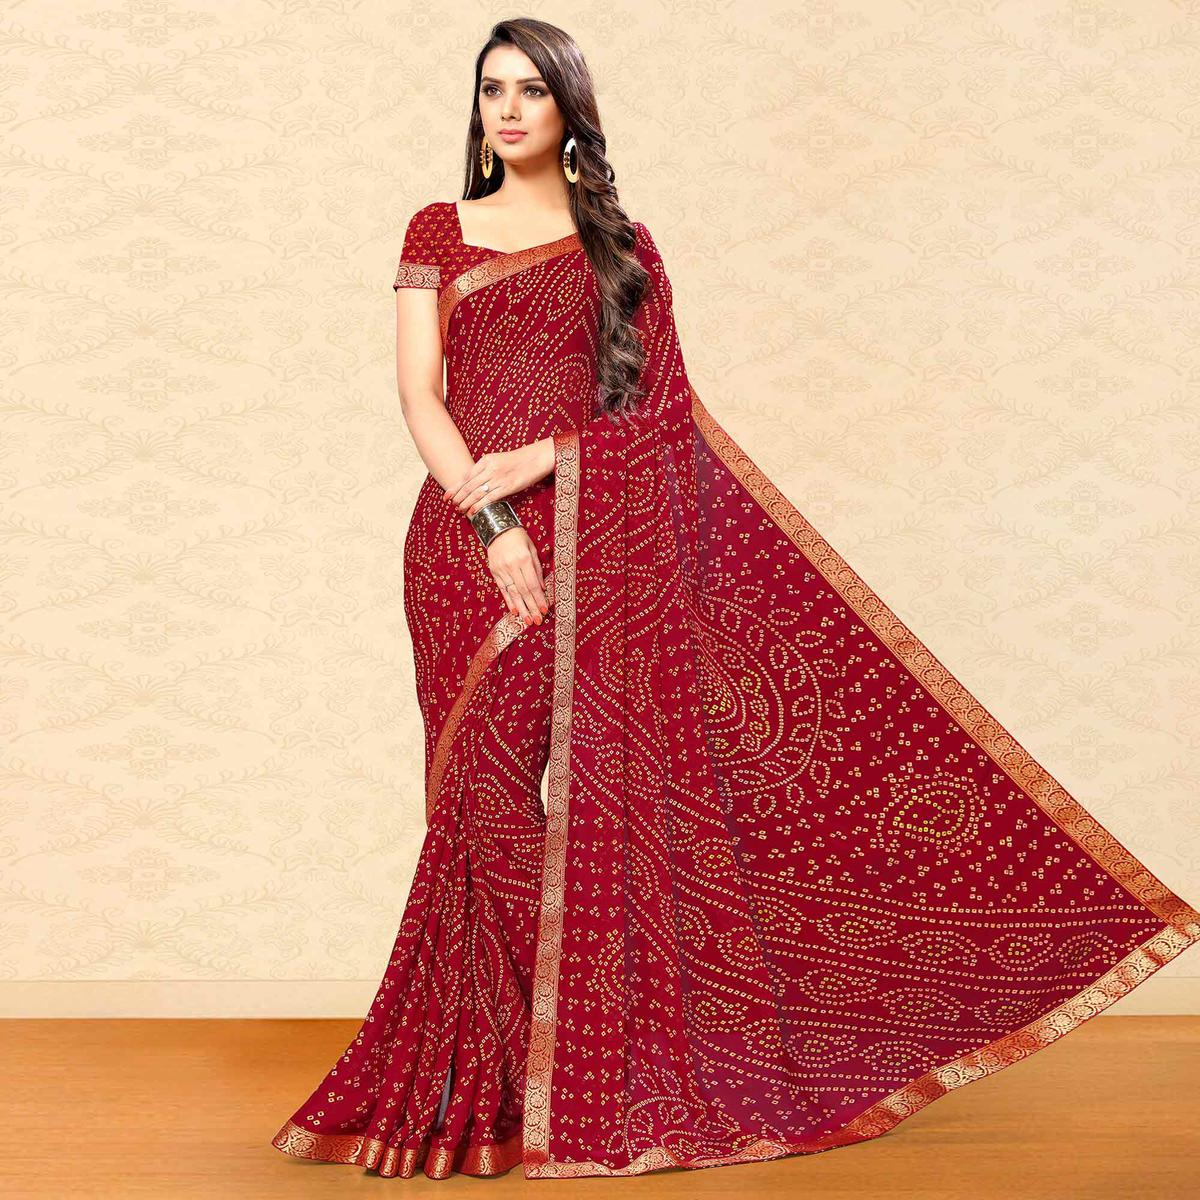 Arresting Maroon Colored Party Wear Bandhani Printed Chiffon Saree